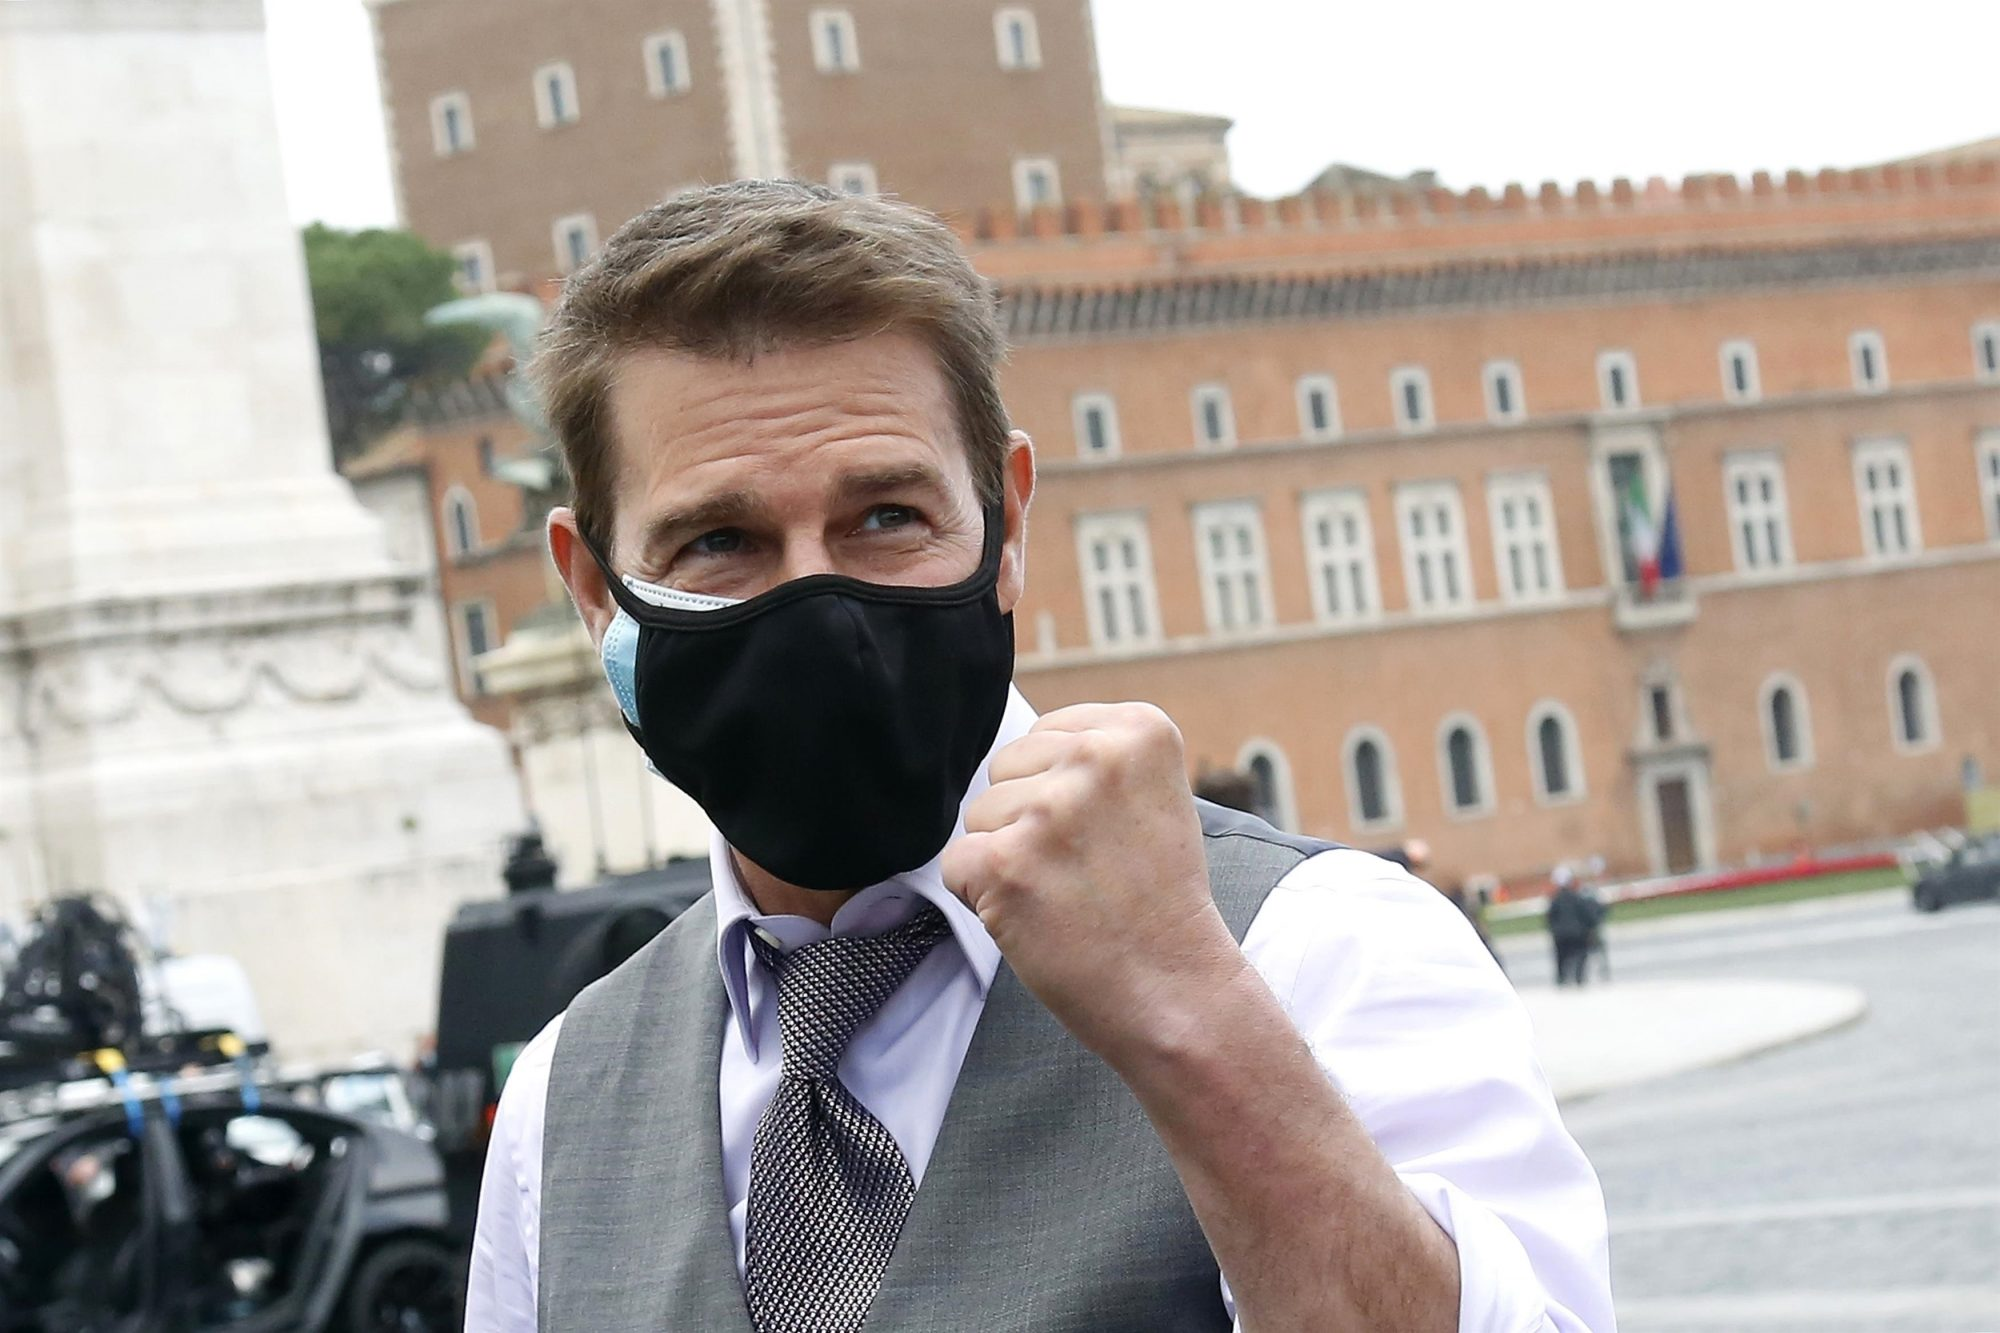 Tom Cruise Wears Two Masks to Greet Fans that are Watching Him Film Scenes in Rome